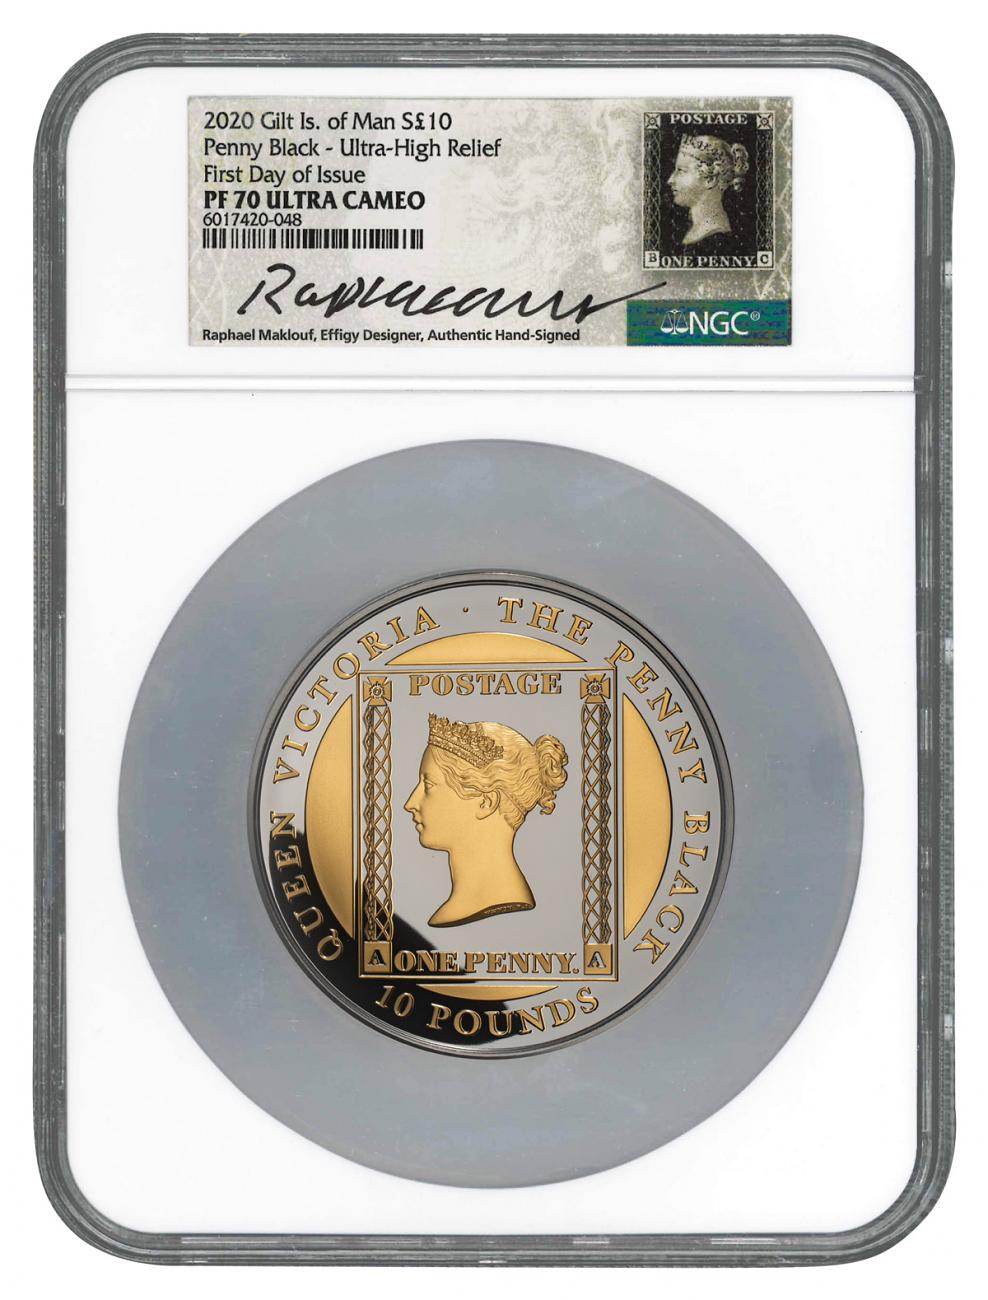 2020 Isle of Man £10 5 oz Silver Penny Black with Gold Gilding Ultra High Relief Proof Coin Scarce and Unique Coin Division NGC PF70 UC FDI Exclusive Maklouf Hand Signed Penny Black Custom Label